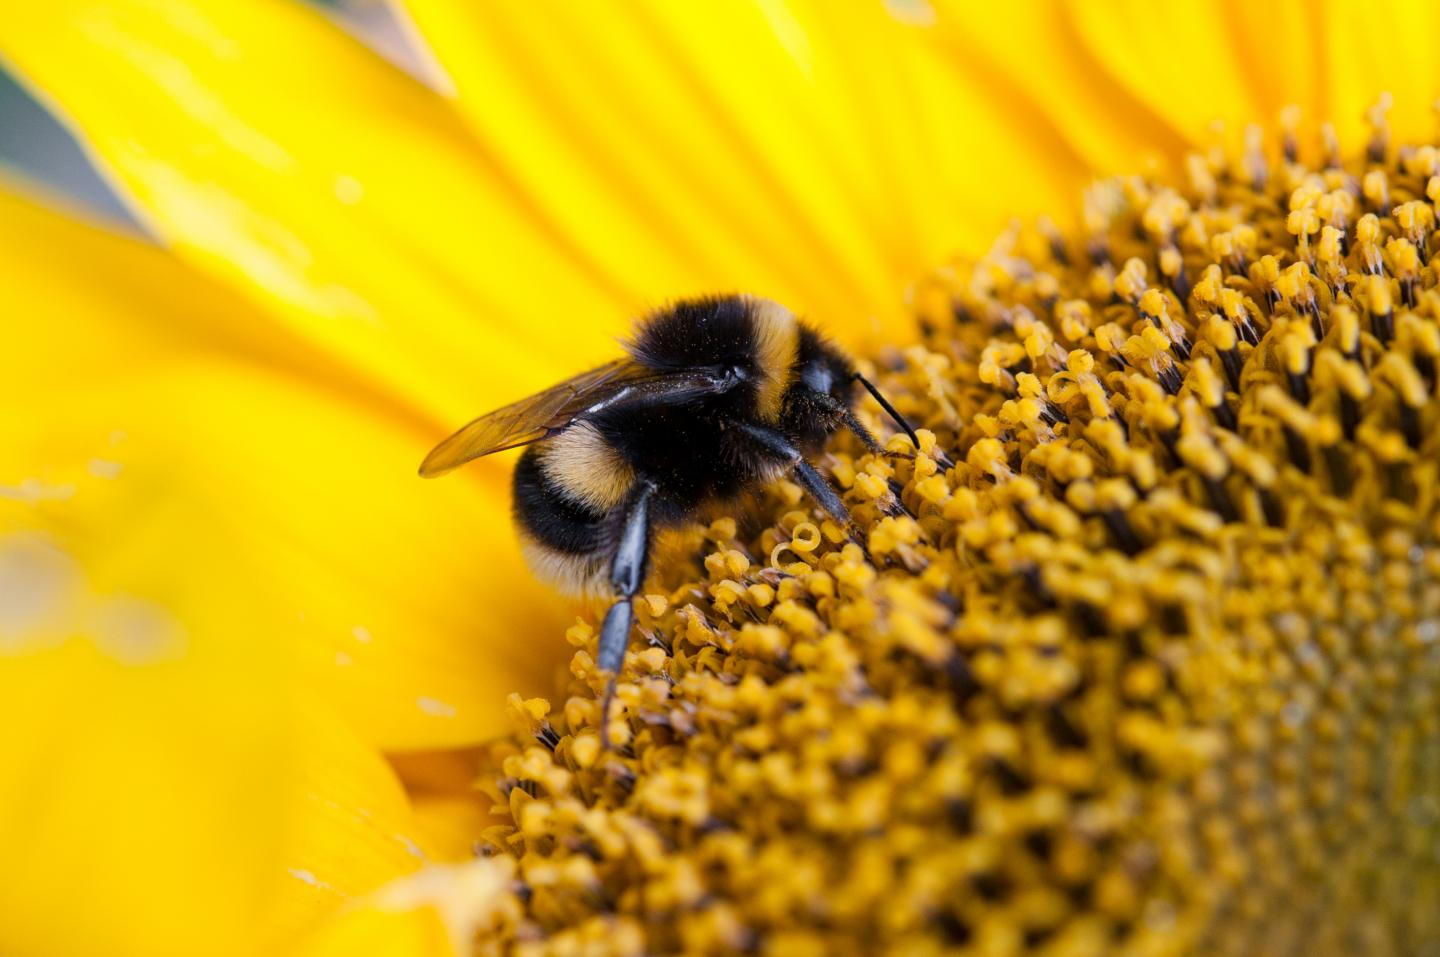 Small Farms Benefit Significantly From a Few Extra Pollinators - BUZZ